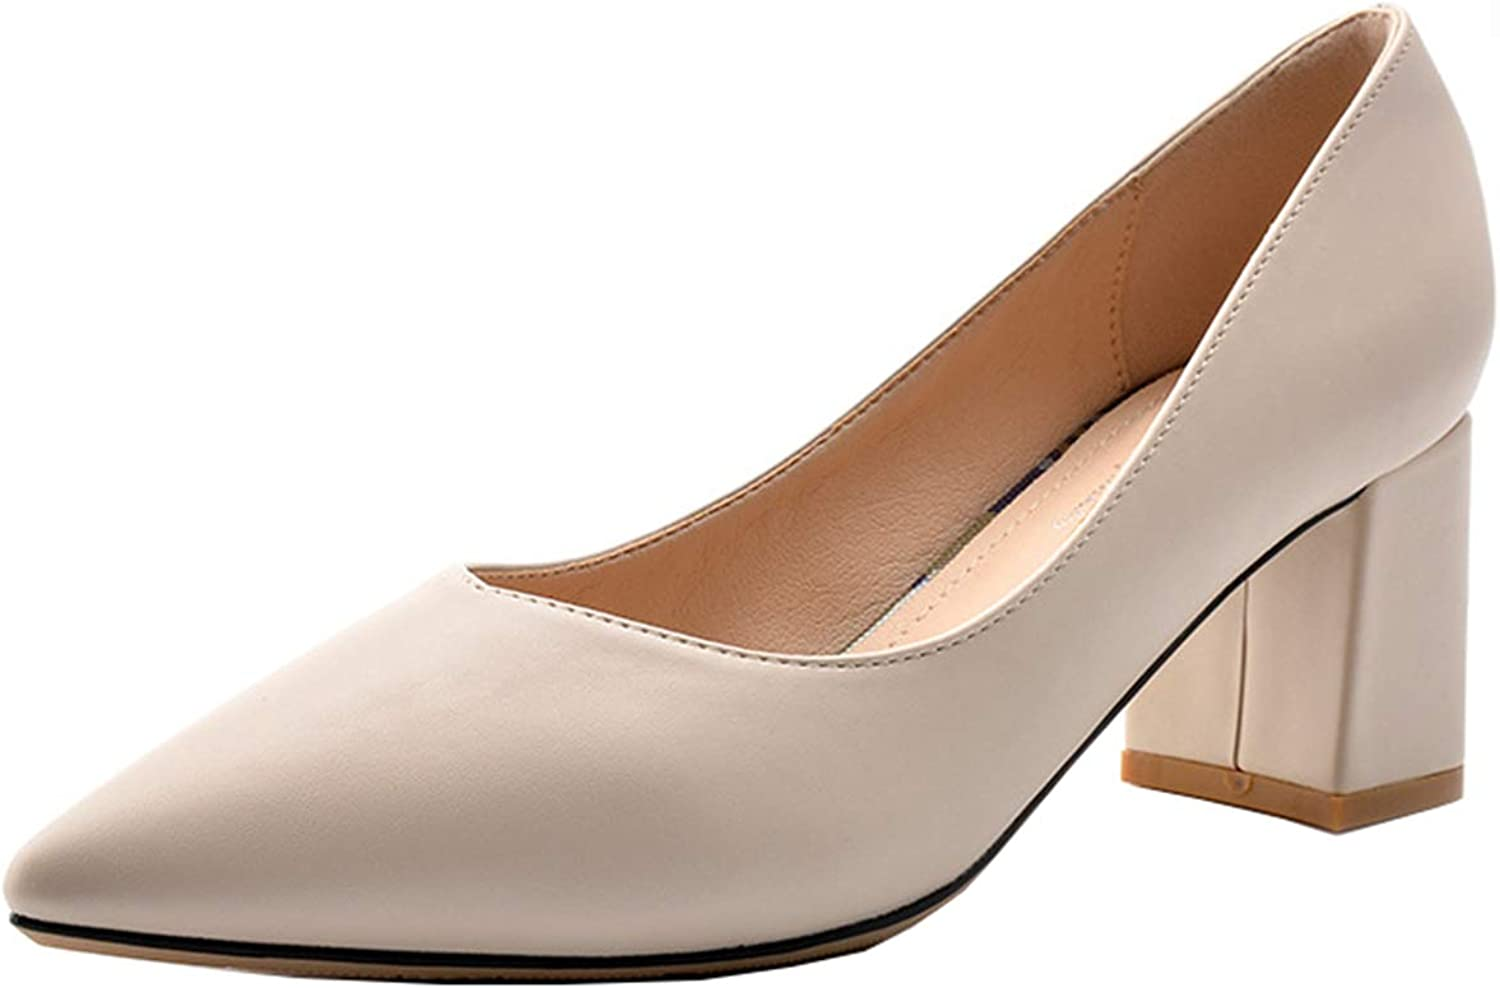 Mashiaoyi Women's Pointed-Toe Block-Heel Pumps